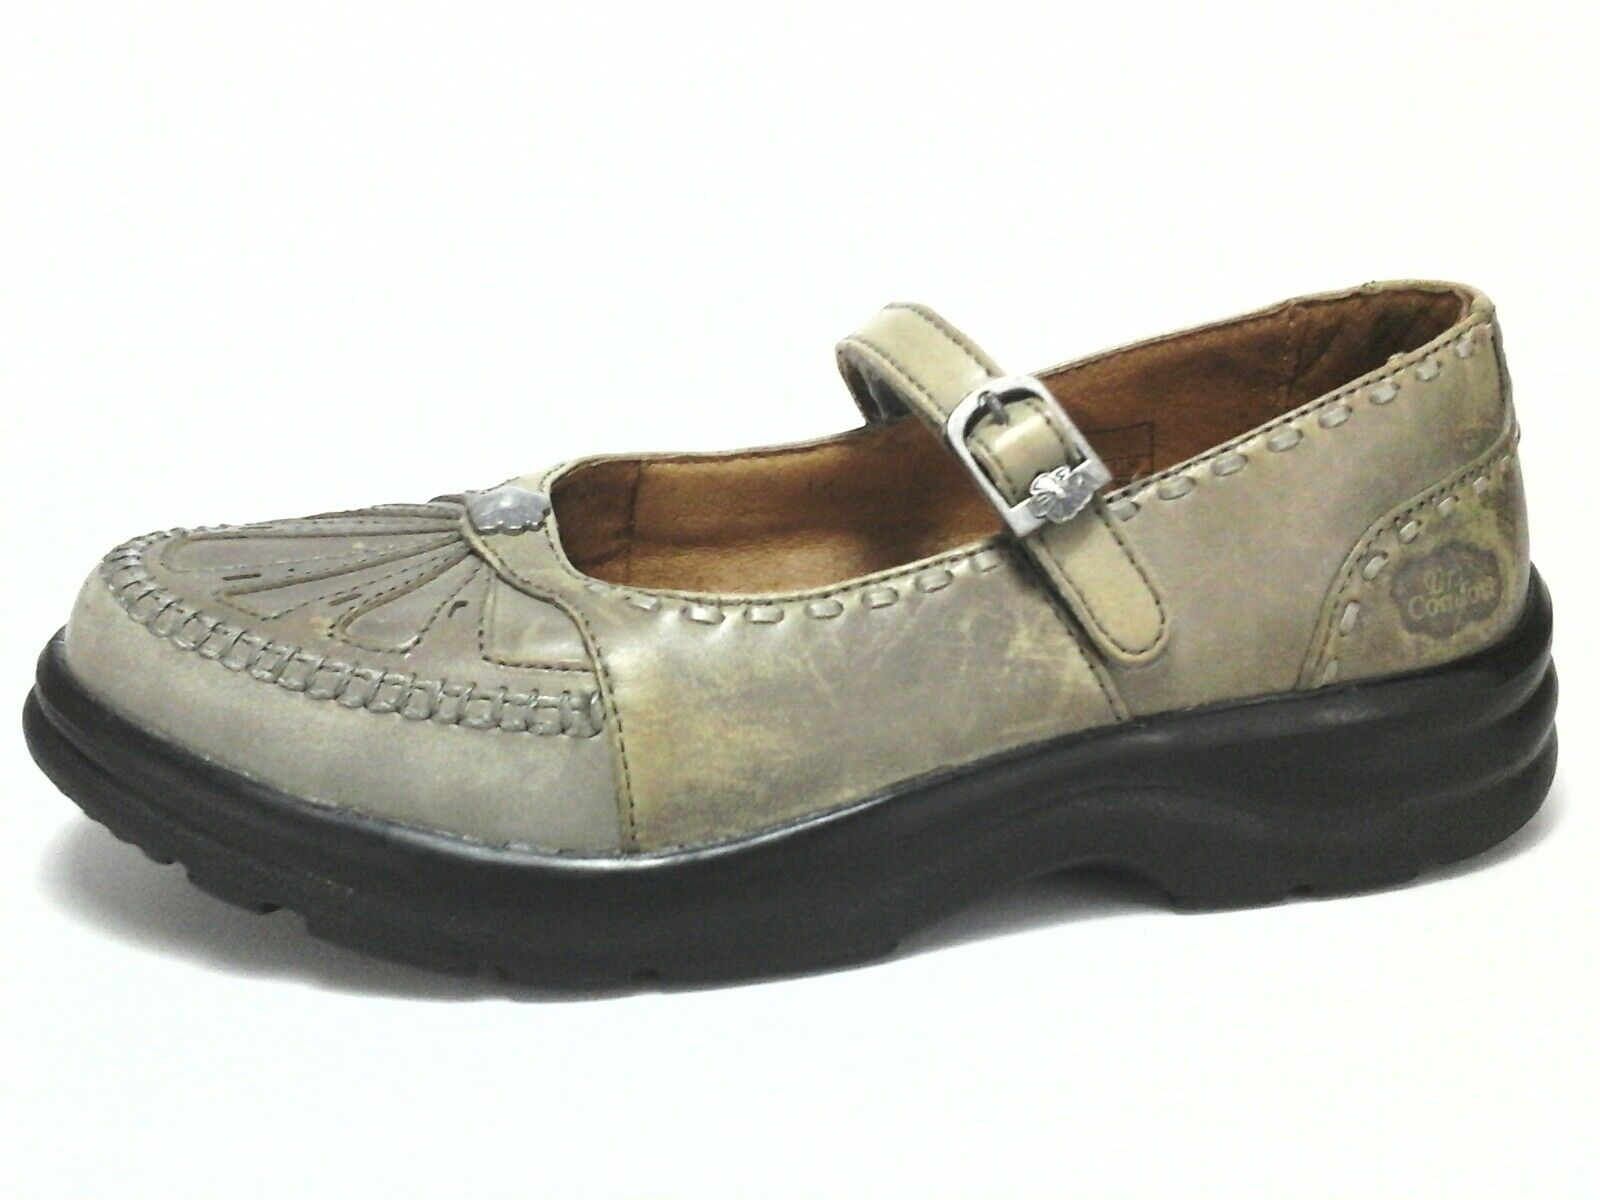 DR. COMFORT shoes PARADISE Casual Mary Jane Diabetic 2105 Women's US 6   36  139